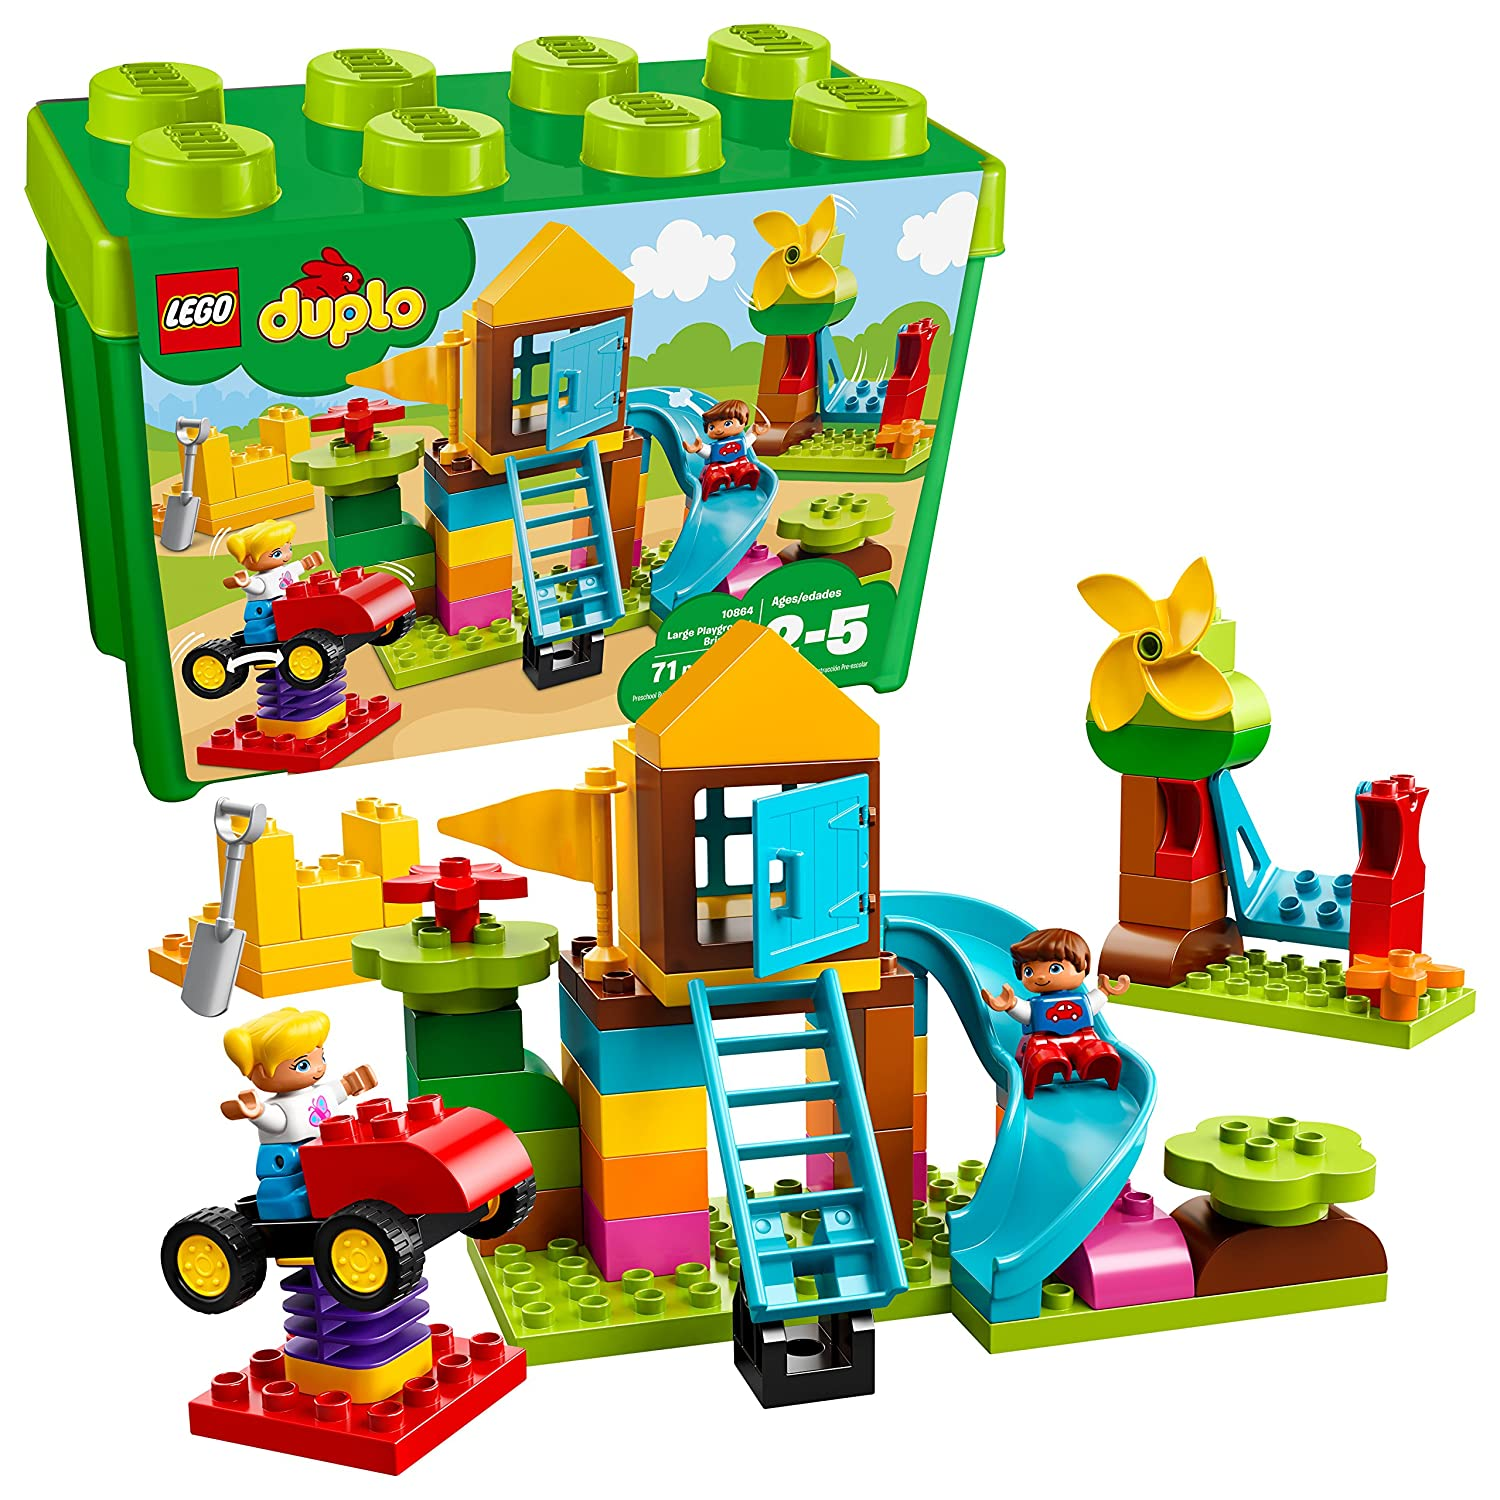 LEGO DUPLO Large Playground Brick Box 10864 Building Block (71 Piece)